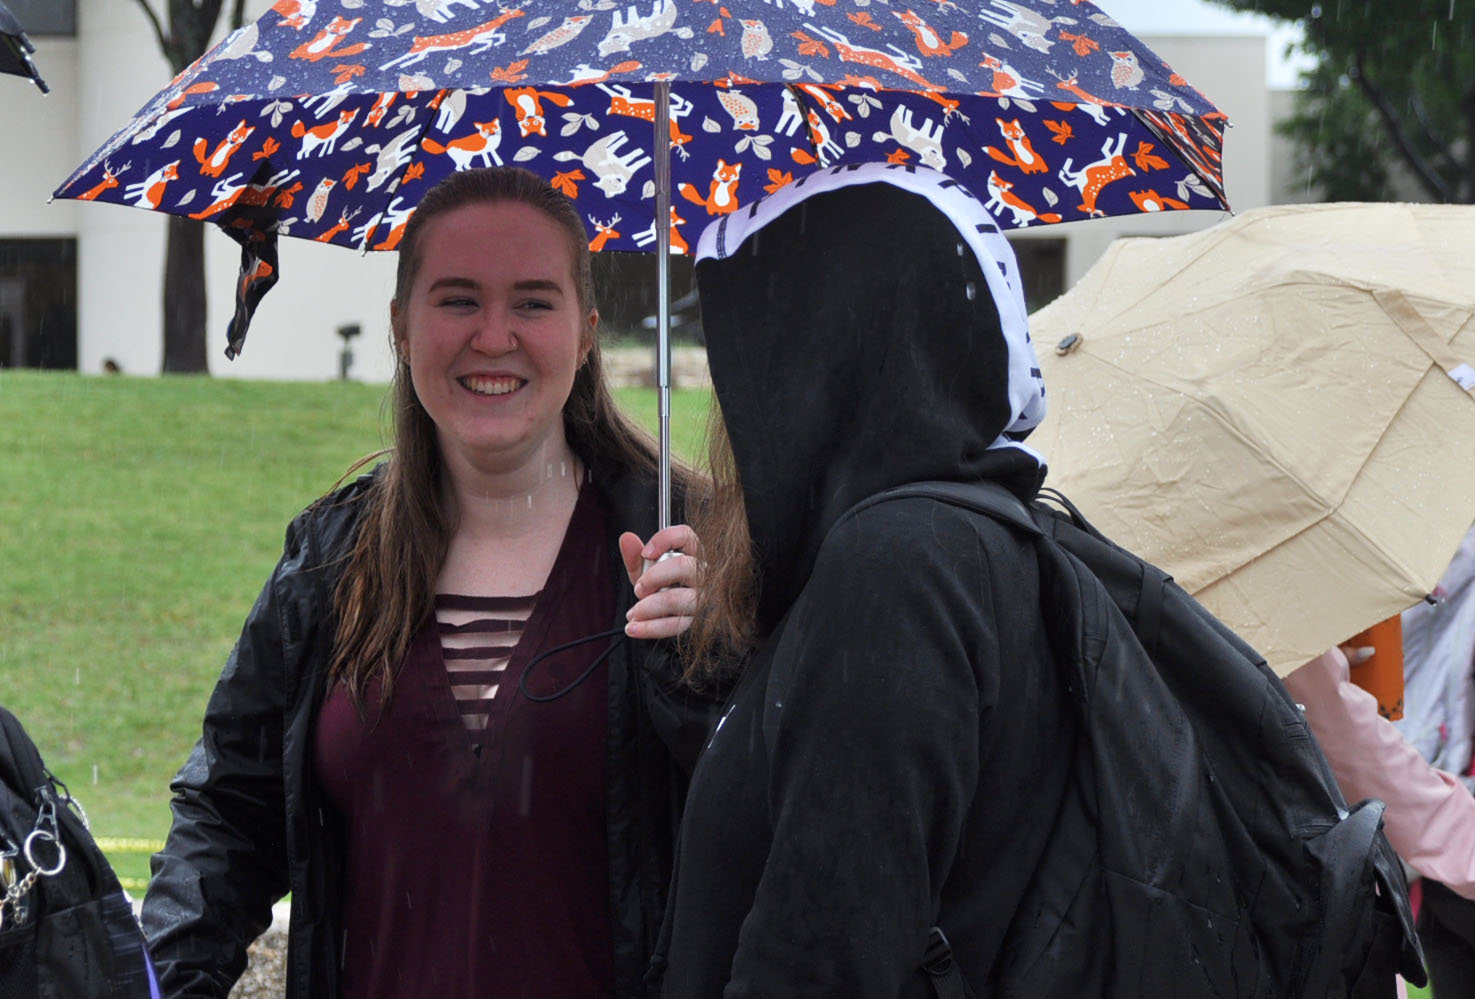 Junior+Samantha+Kling+laughs+in+the+rain+while+waiting+in+line+with+a+friend.